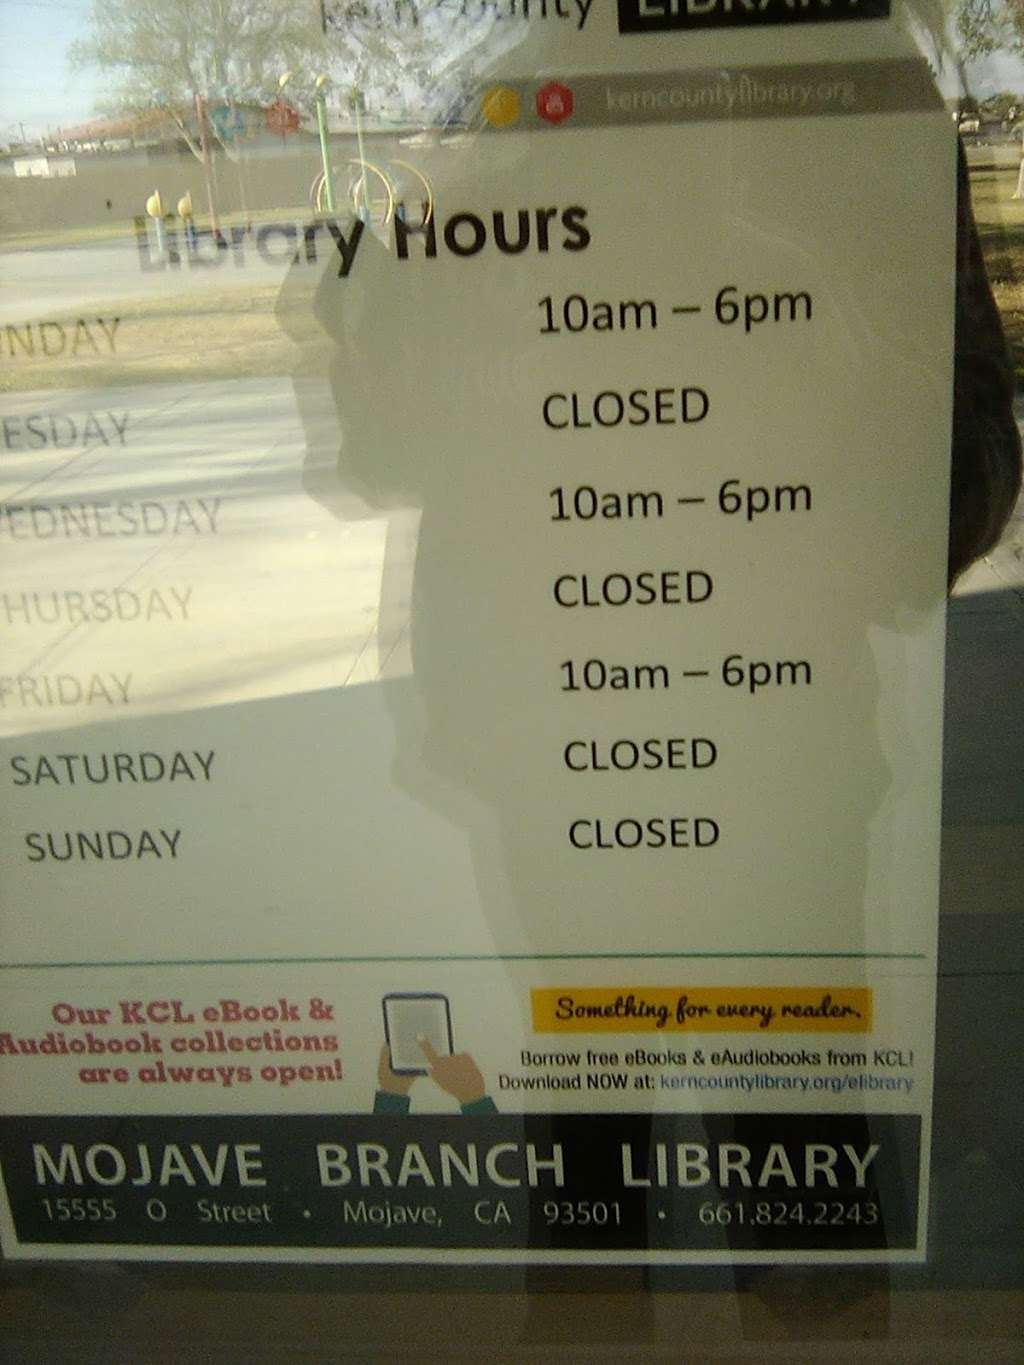 Kern County Library - Mojave - library  | Photo 2 of 2 | Address: 15555 O St, Mojave, CA 93501, USA | Phone: (661) 824-2243